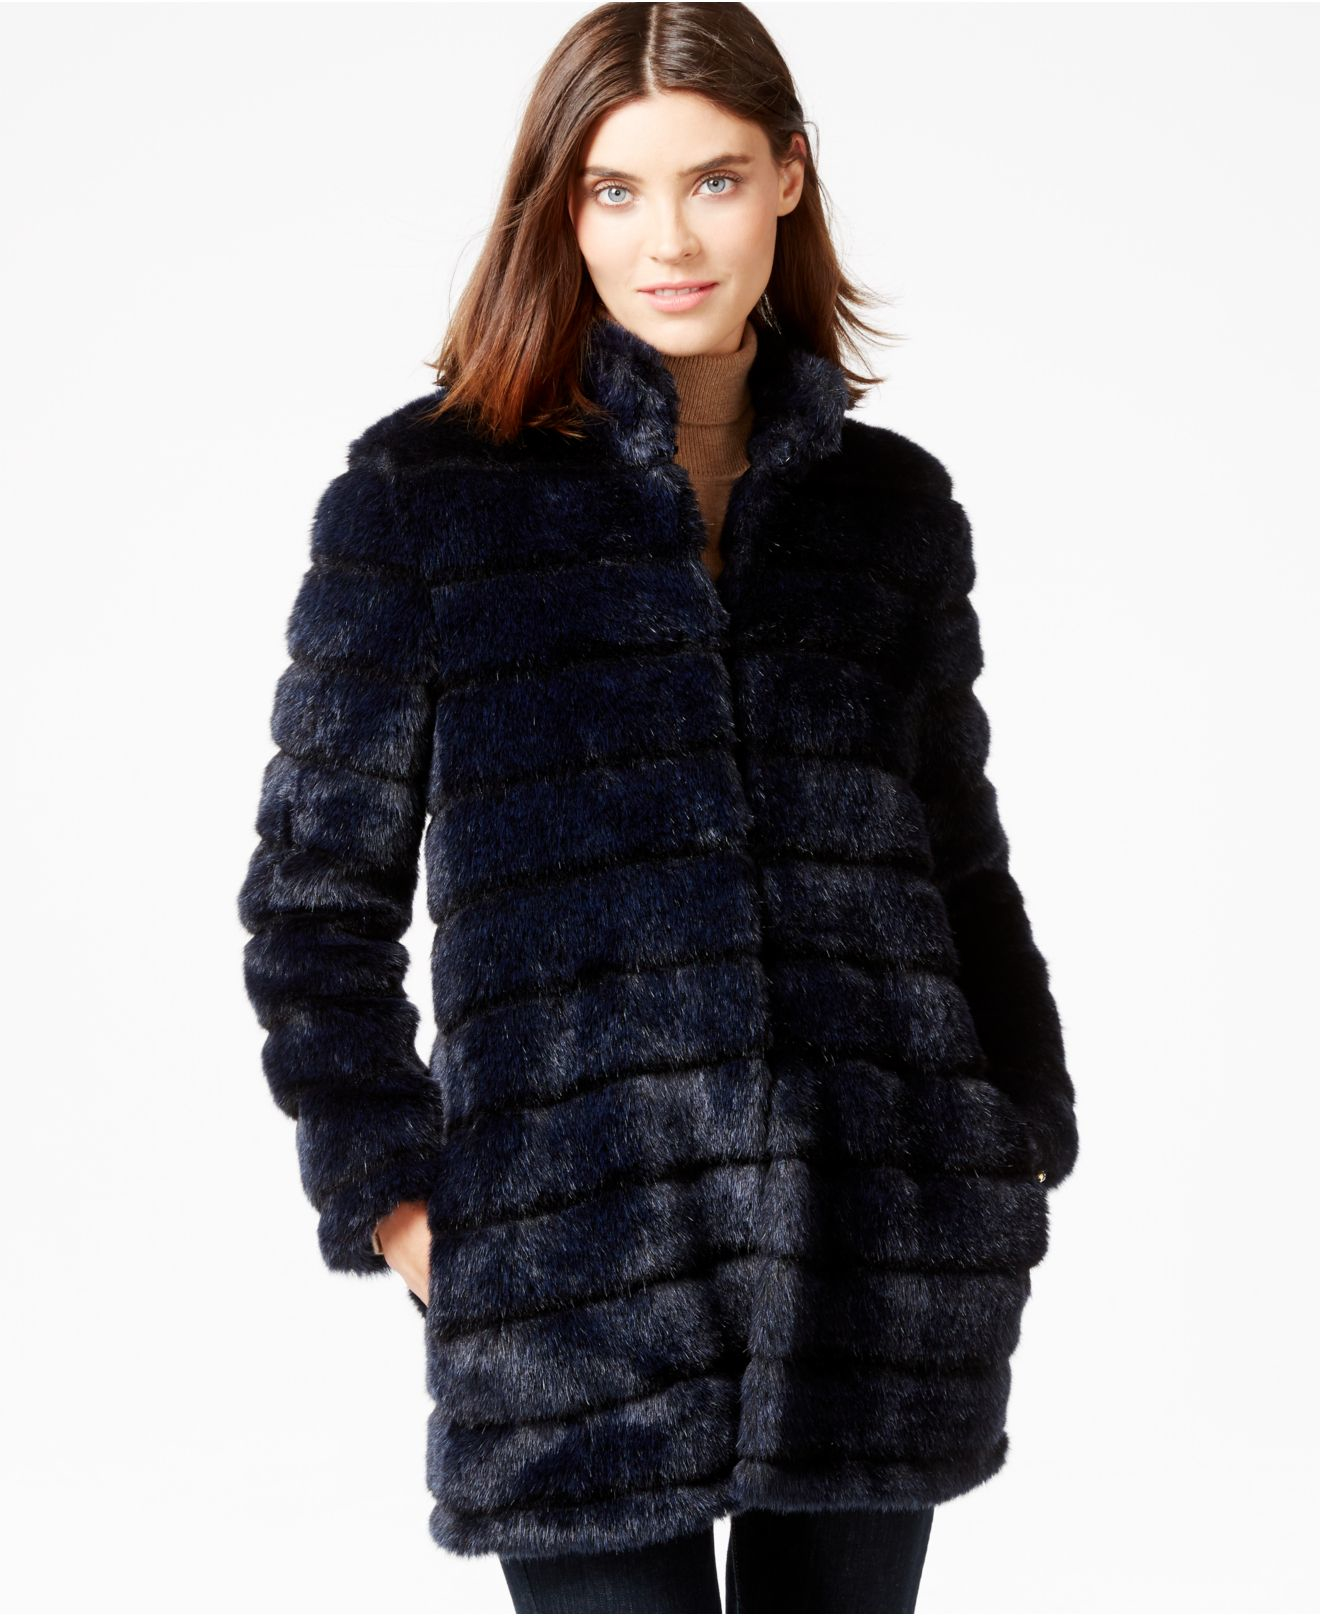 Laundry by shelli segal Ribbed Faux-fur Coat in Blue | Lyst